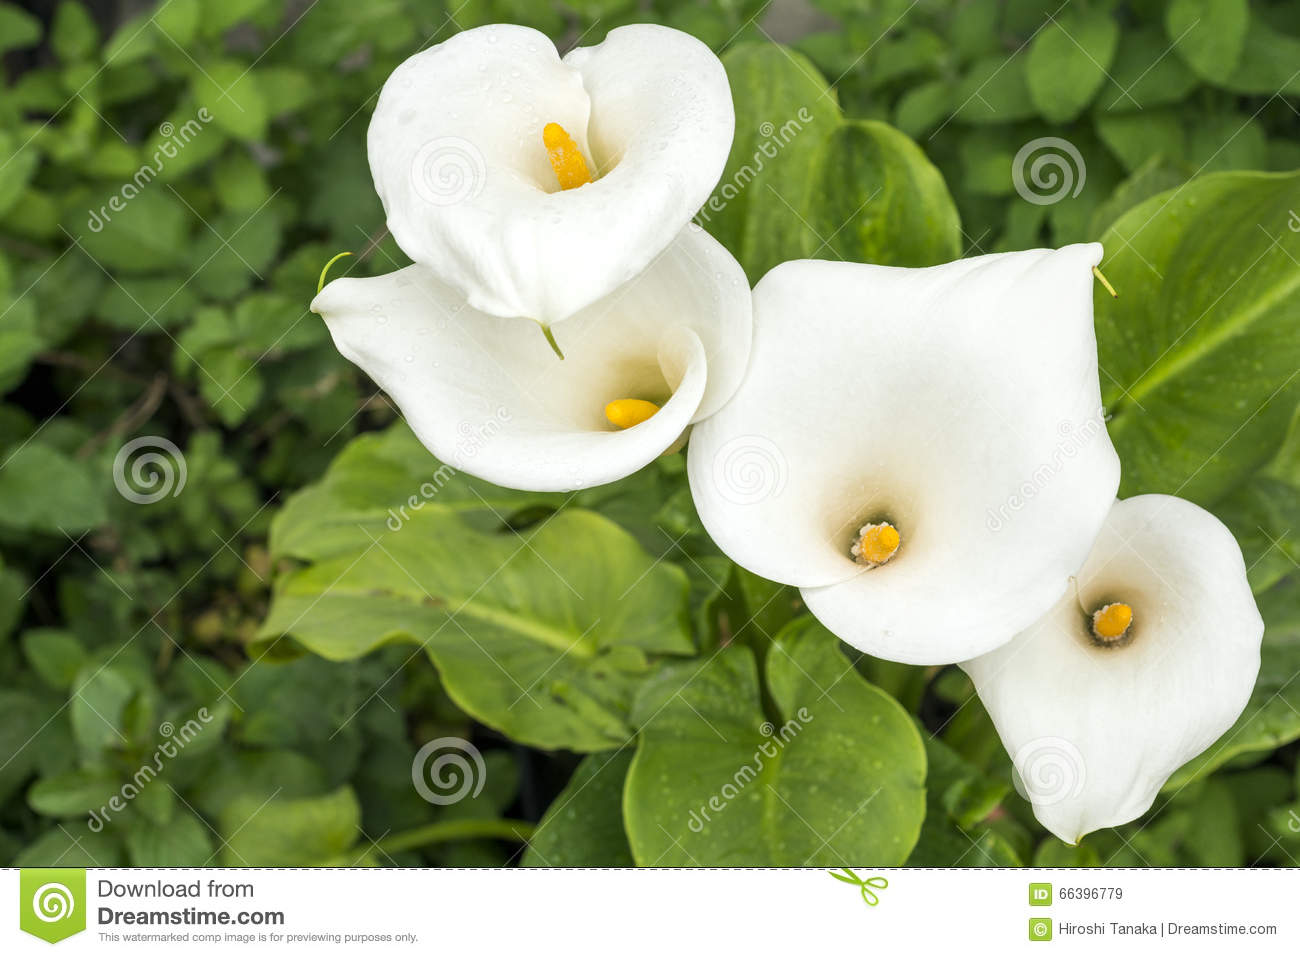 White calla lily flowers stock image image of flower 66396779 white calla lily flowers izmirmasajfo Image collections